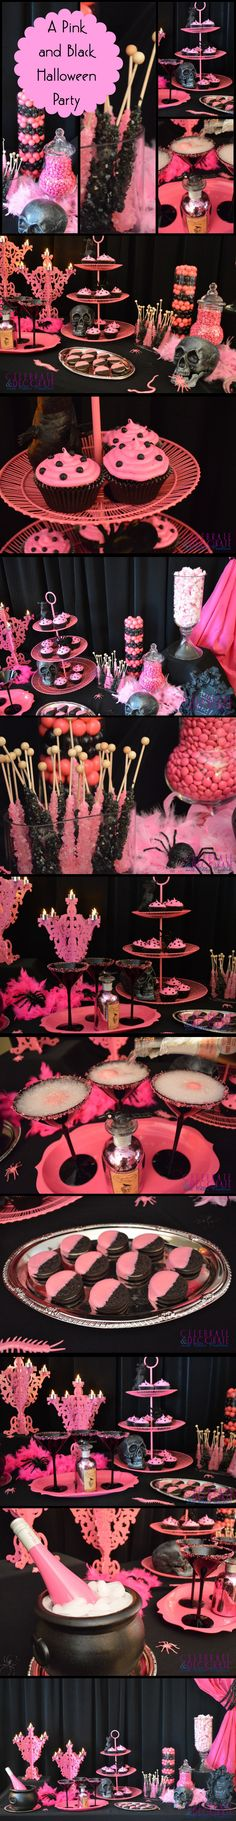 A Fabulous Pink & Black Halloween Party Dessert Table.  The pink laser-cut candelabras are from Target.  Look at all the pink bugs!  Creepy AND cool!